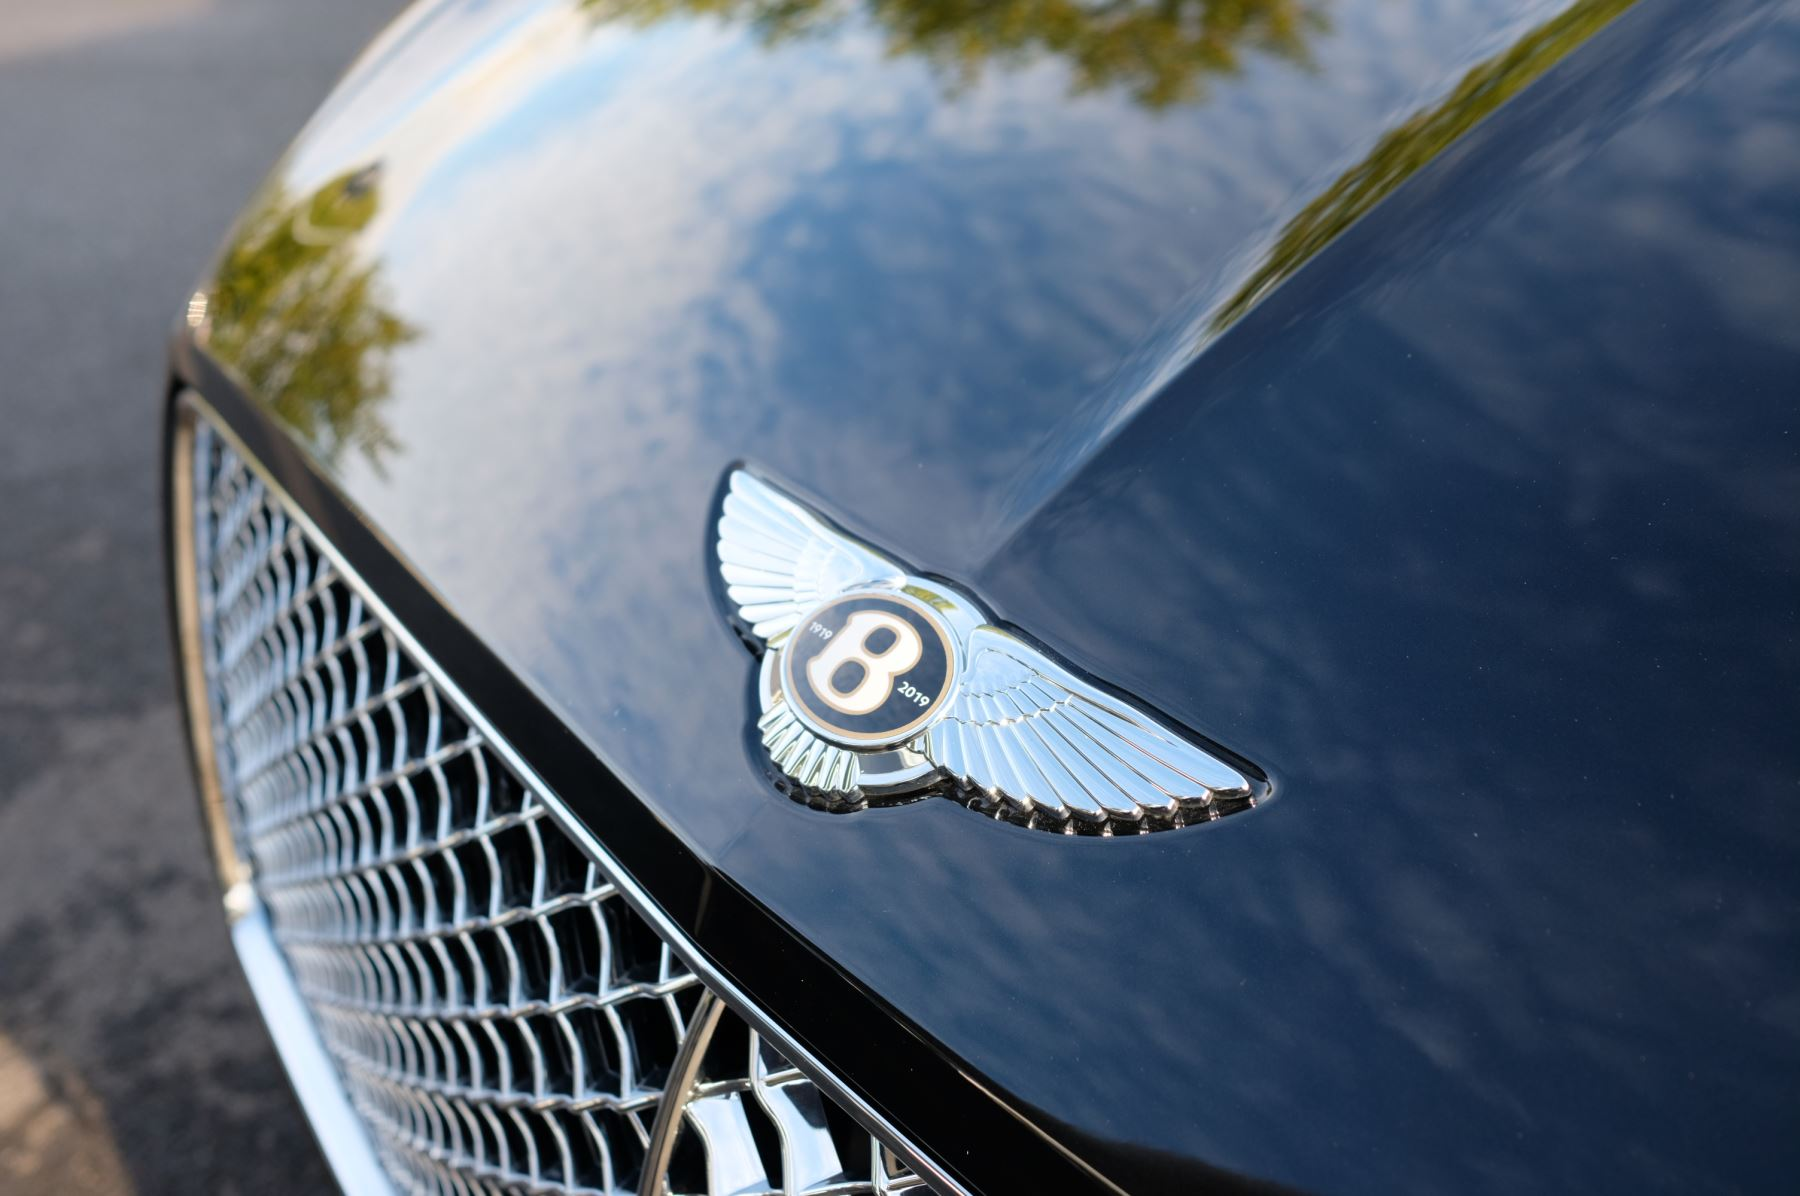 Bentley Continental GT 4.0 V8 2dr Auto [City+Touring Spec] image 9